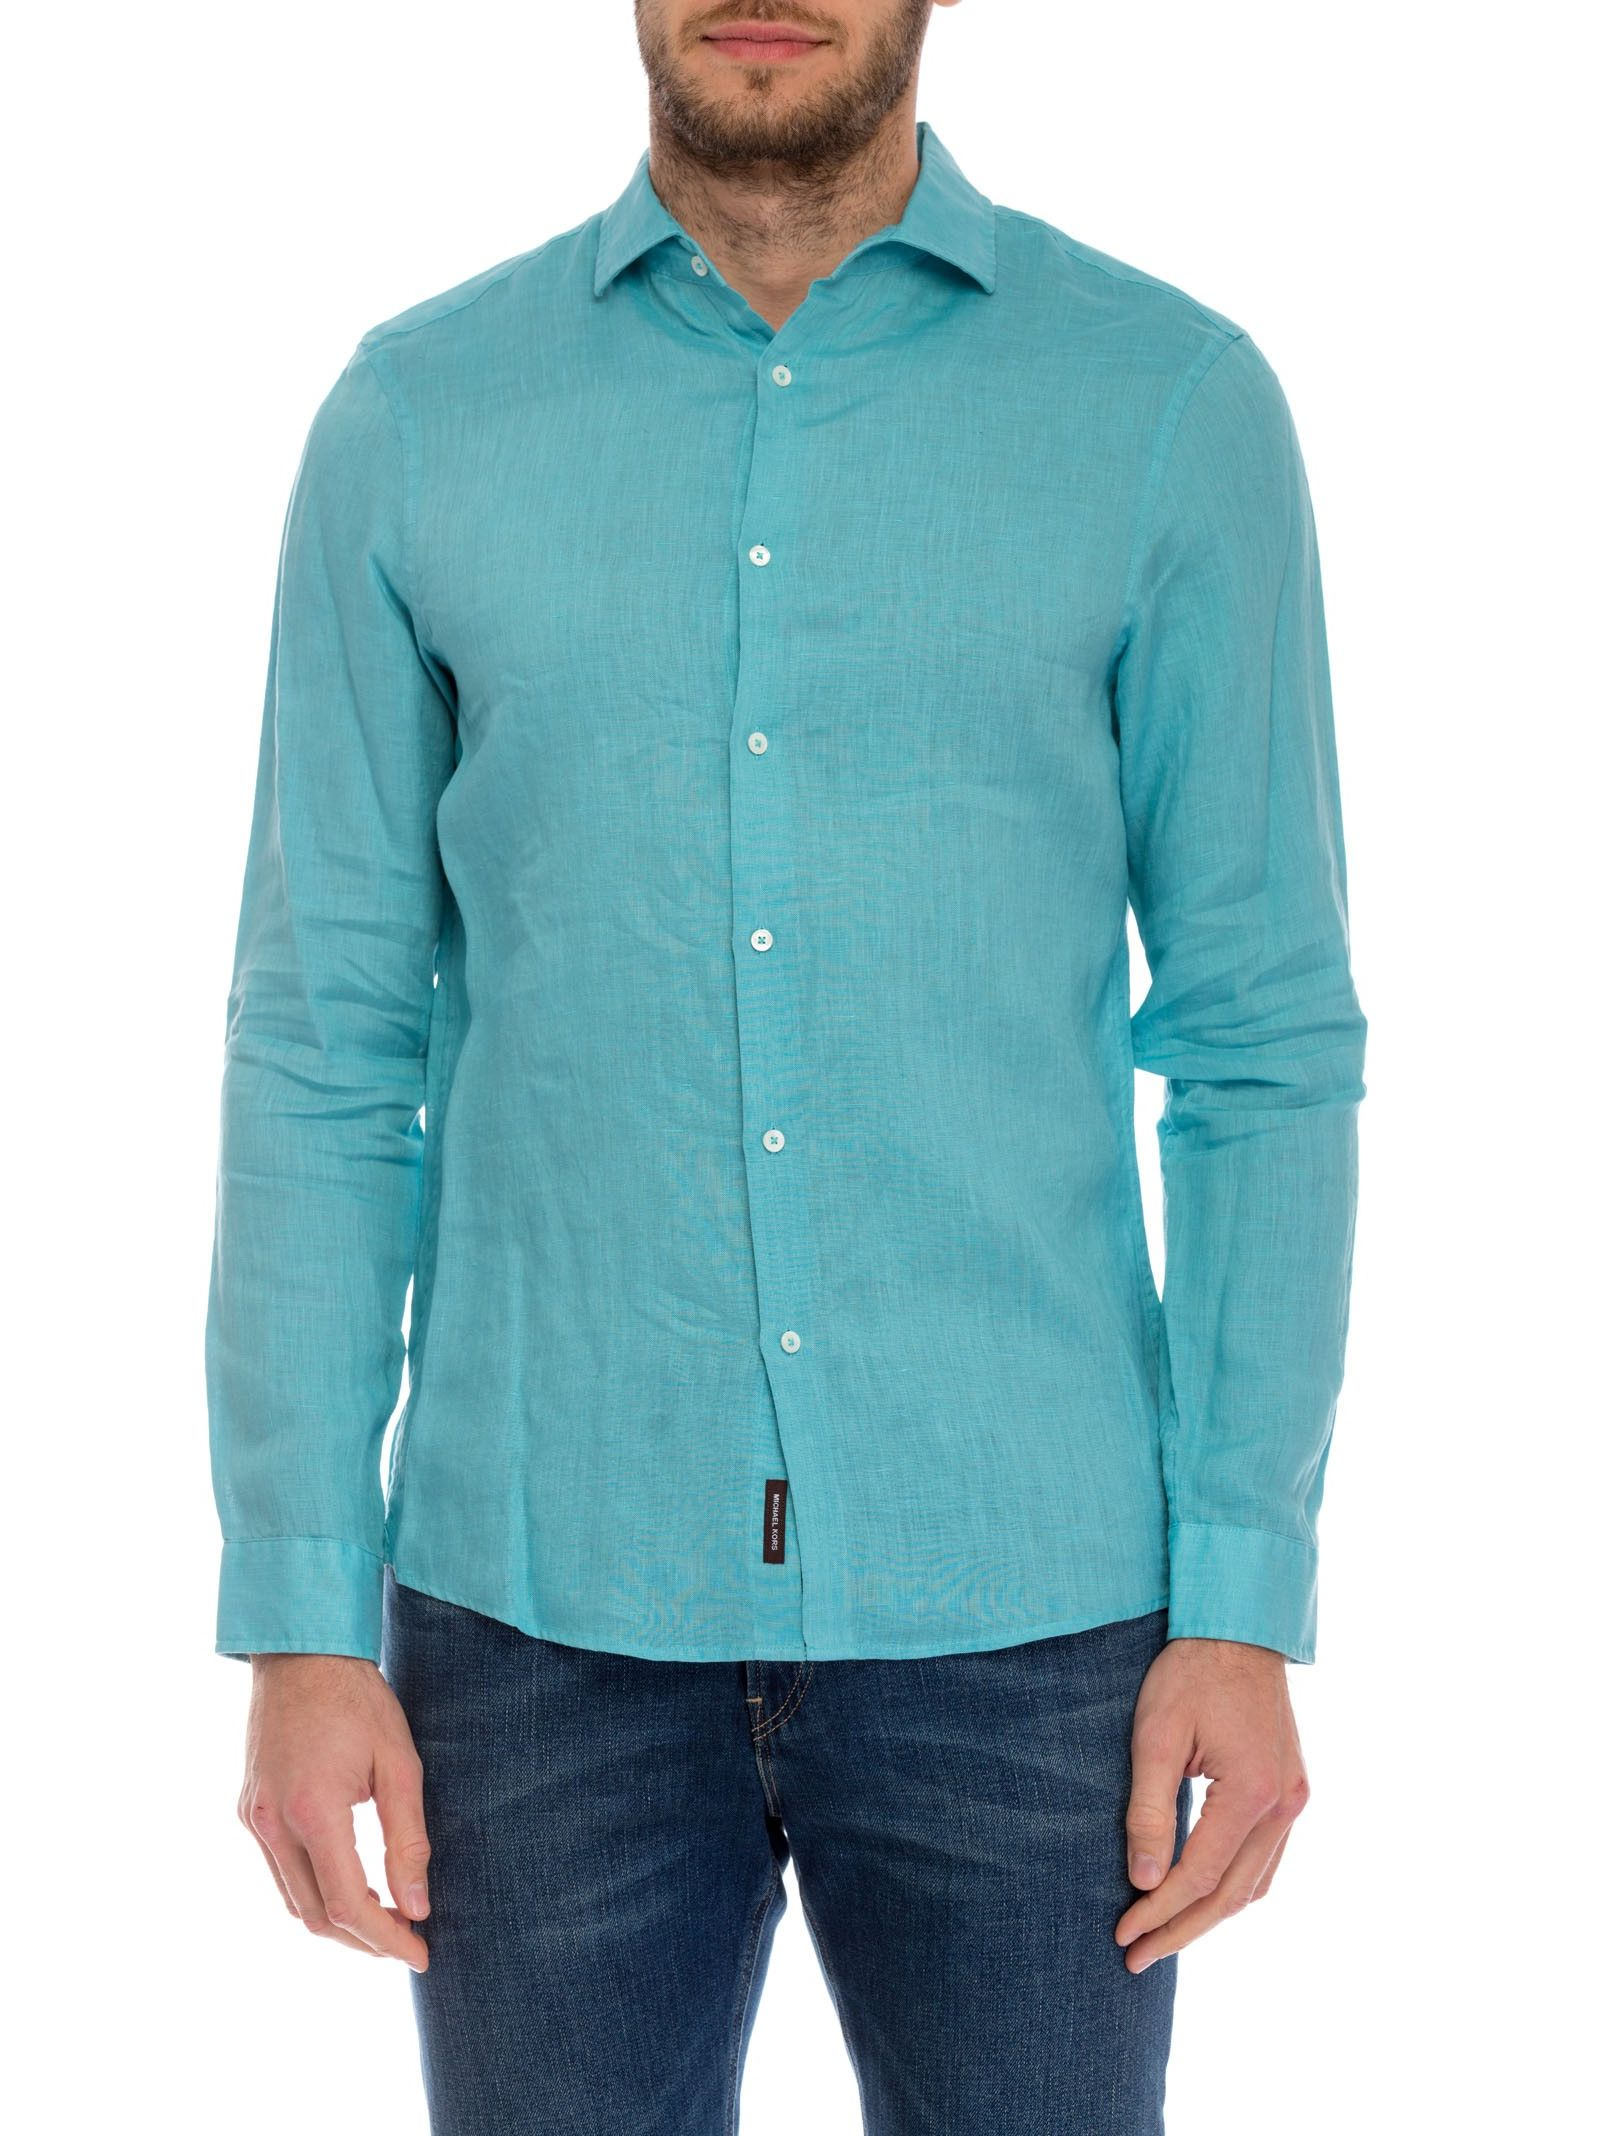 michael kors male 201959 michael kors classic button down shirt